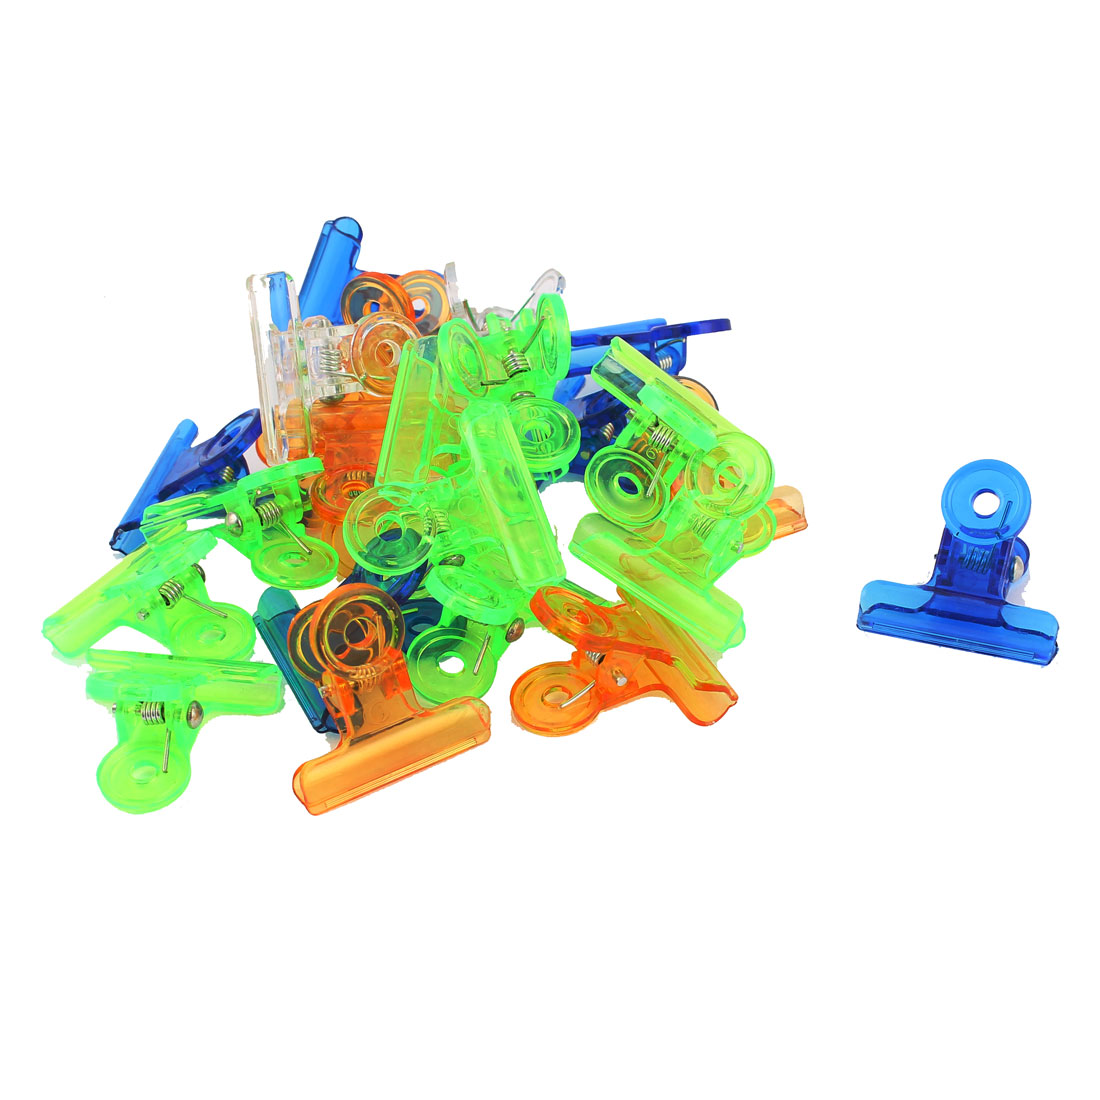 24pcs Colorful Mini Plastic Binder Clips 31mm for Paper Sheets